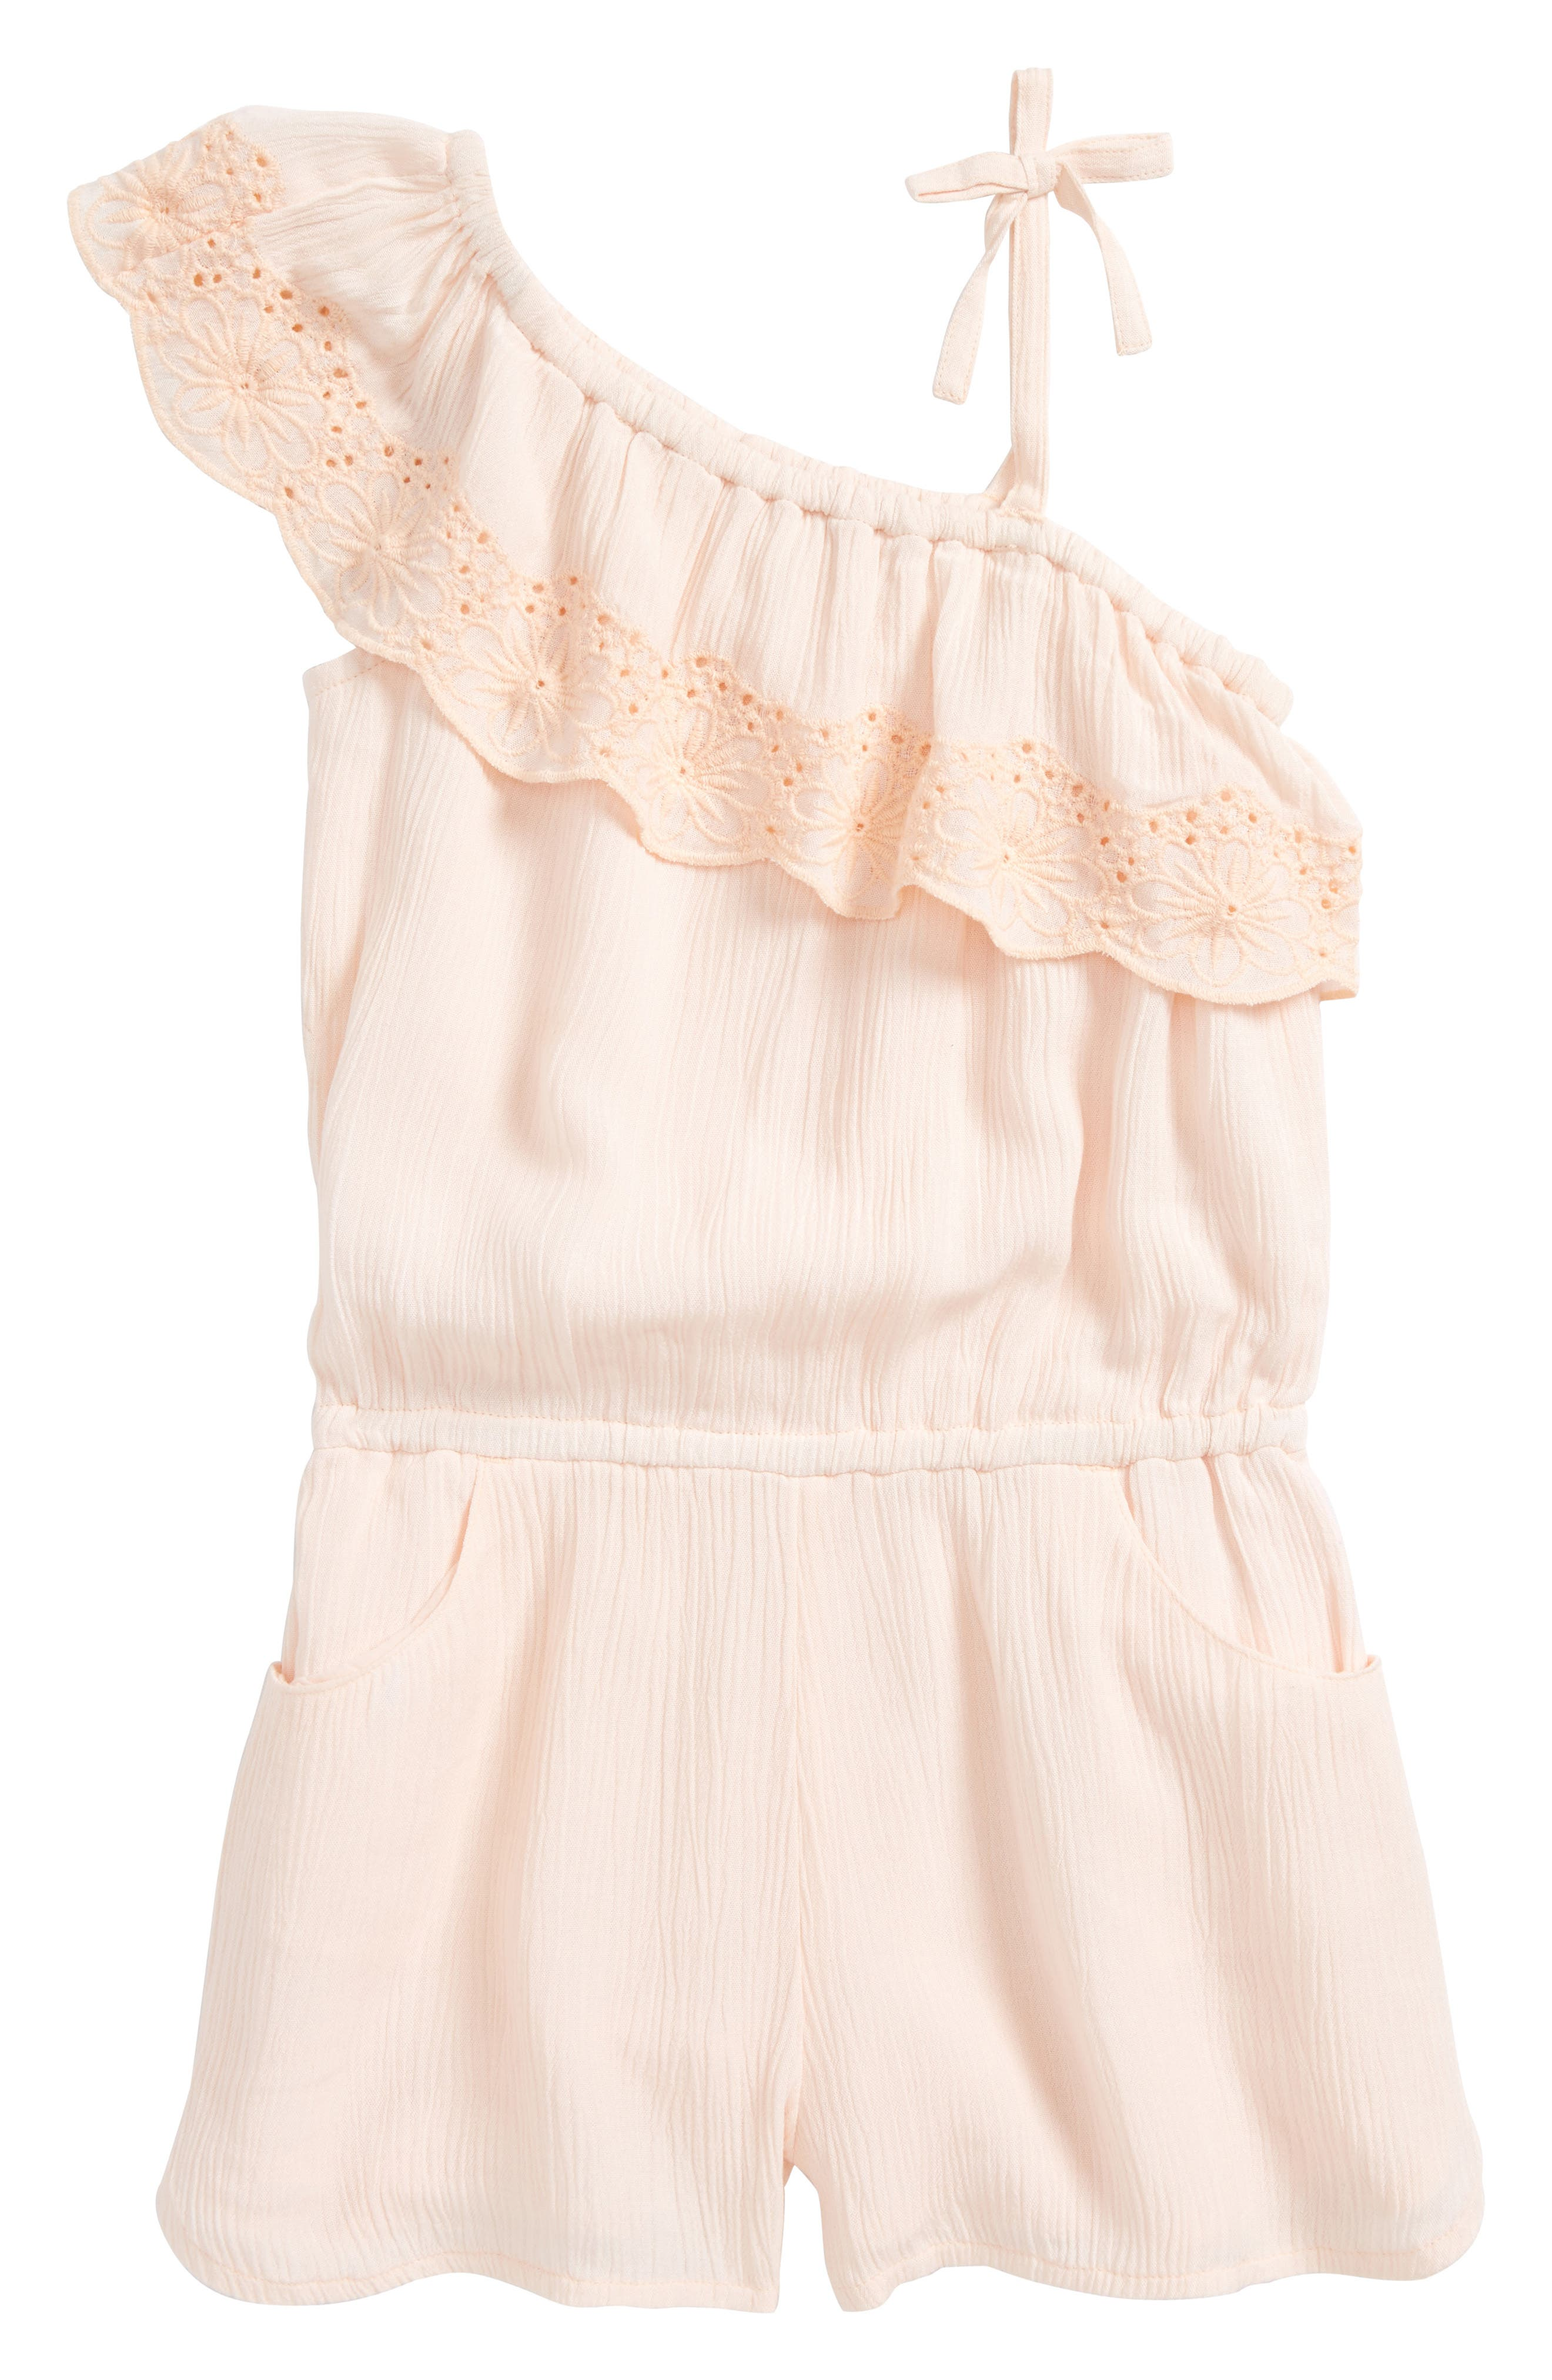 Lanai One-Shoulder Romper,                             Main thumbnail 1, color,                             PEACH BLUSH